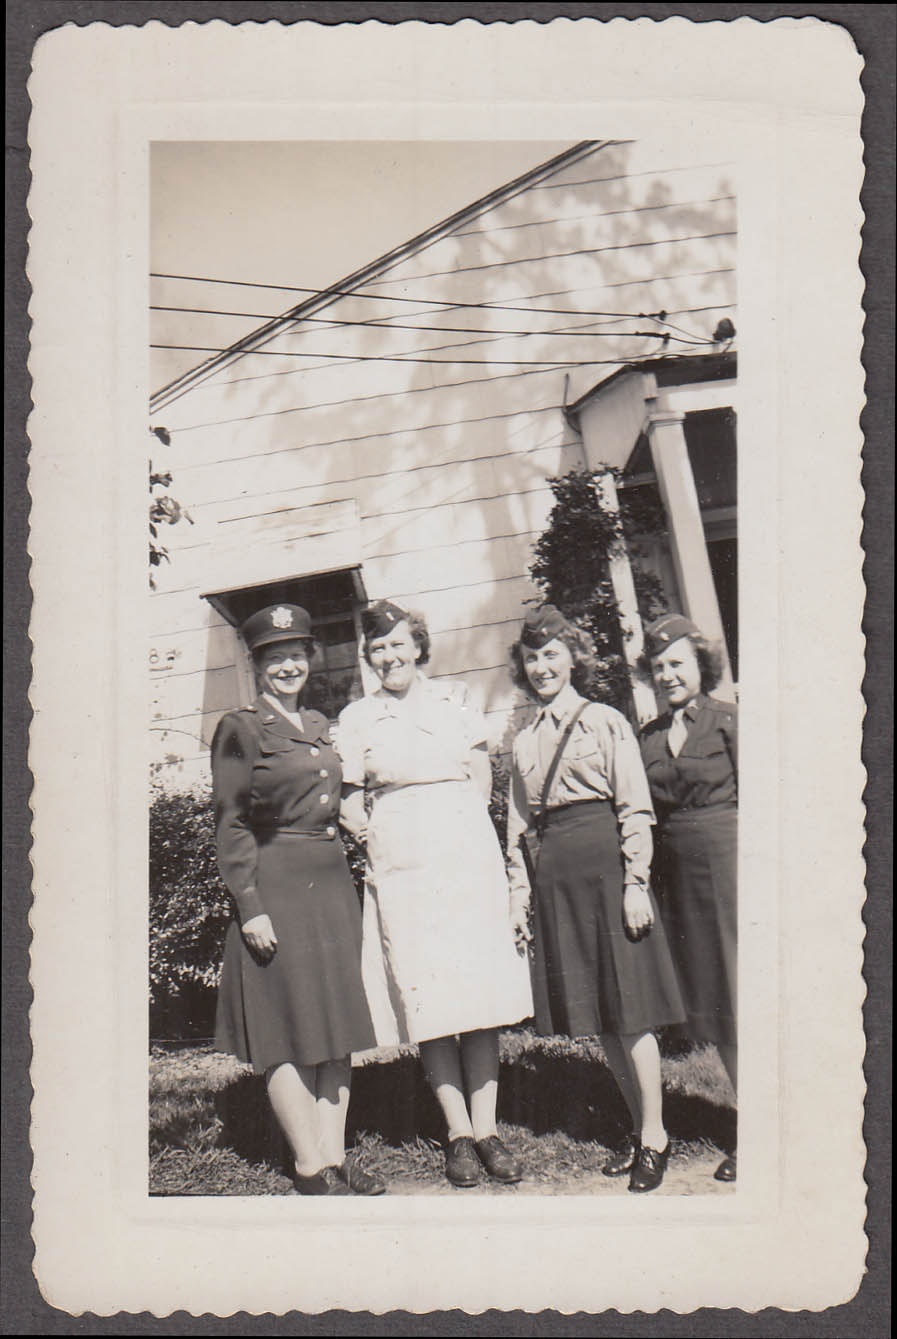 US Army Nurse officers Lt Hunt, Taylor, Vines, Lemeral vernacular snapshot 1945